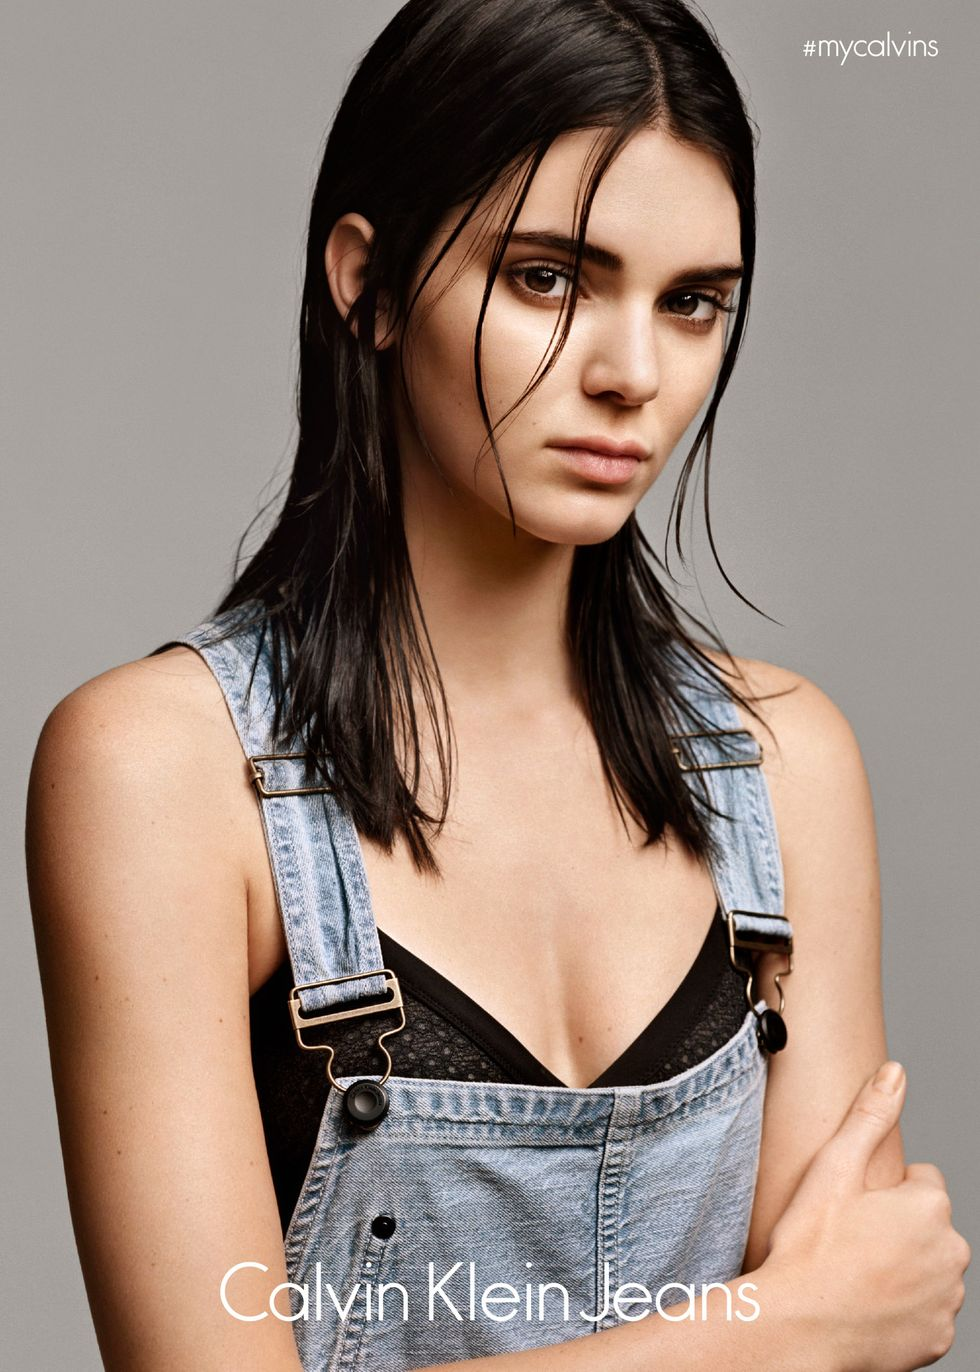 See Kendall Jenner As the Face of Calvin Klein Jeans